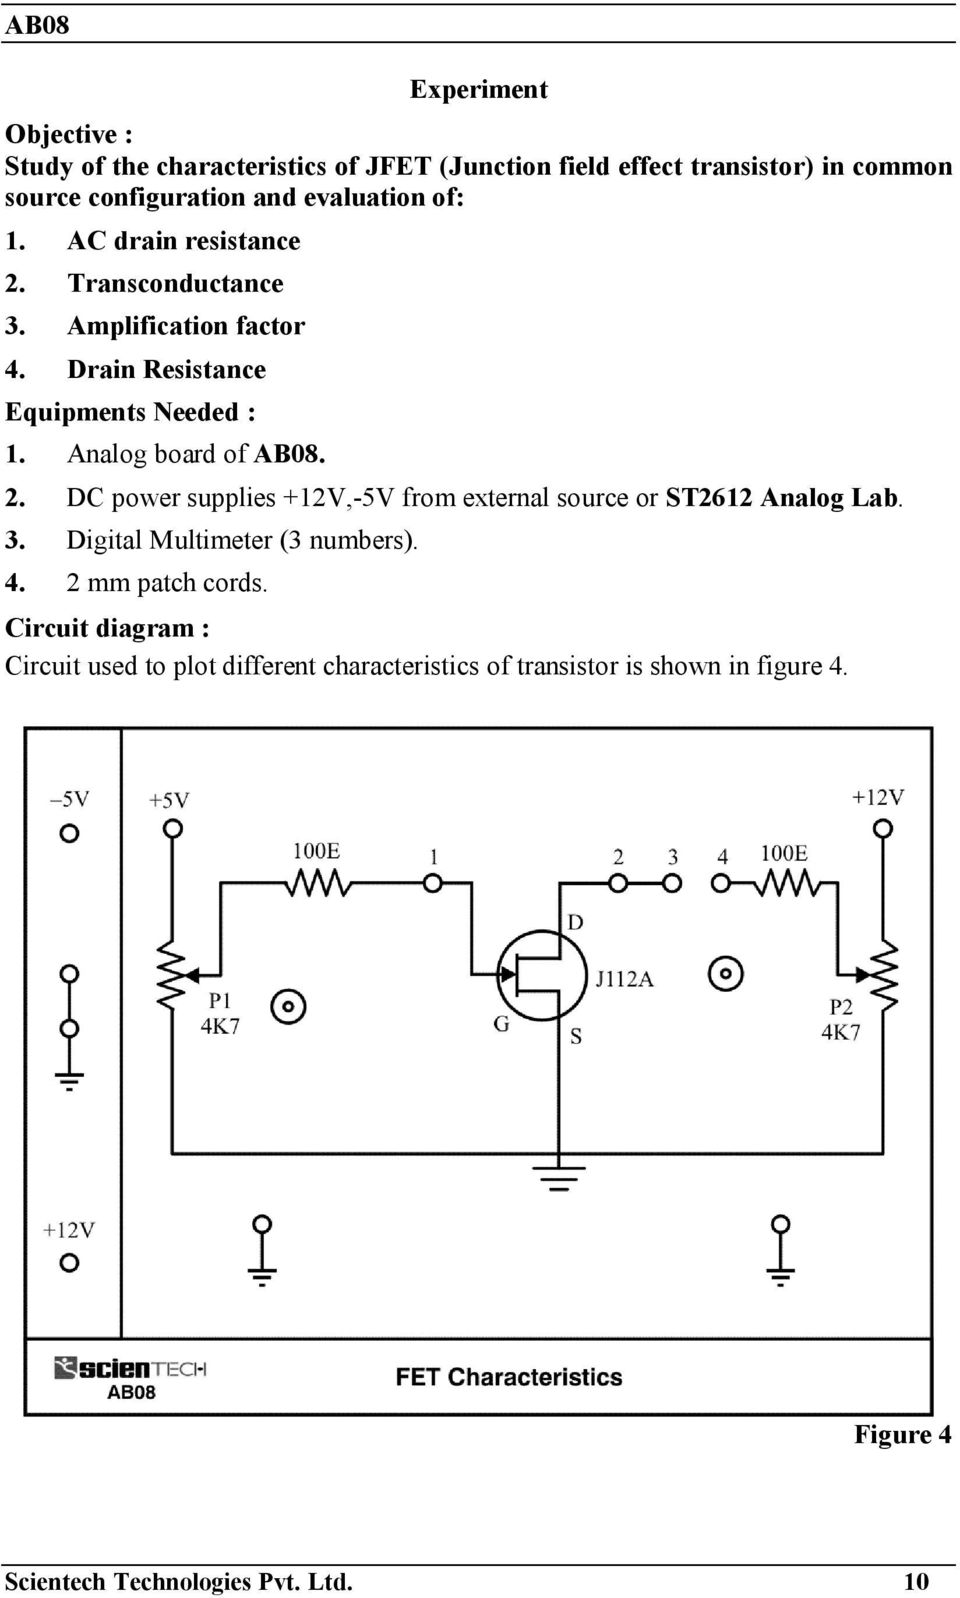 Operating Manual Ver Pdf Fet Voltmeter Circuit Schematic Diagram Analog Board Of Ab08 2 Dc Power Supplies 12v 5v From